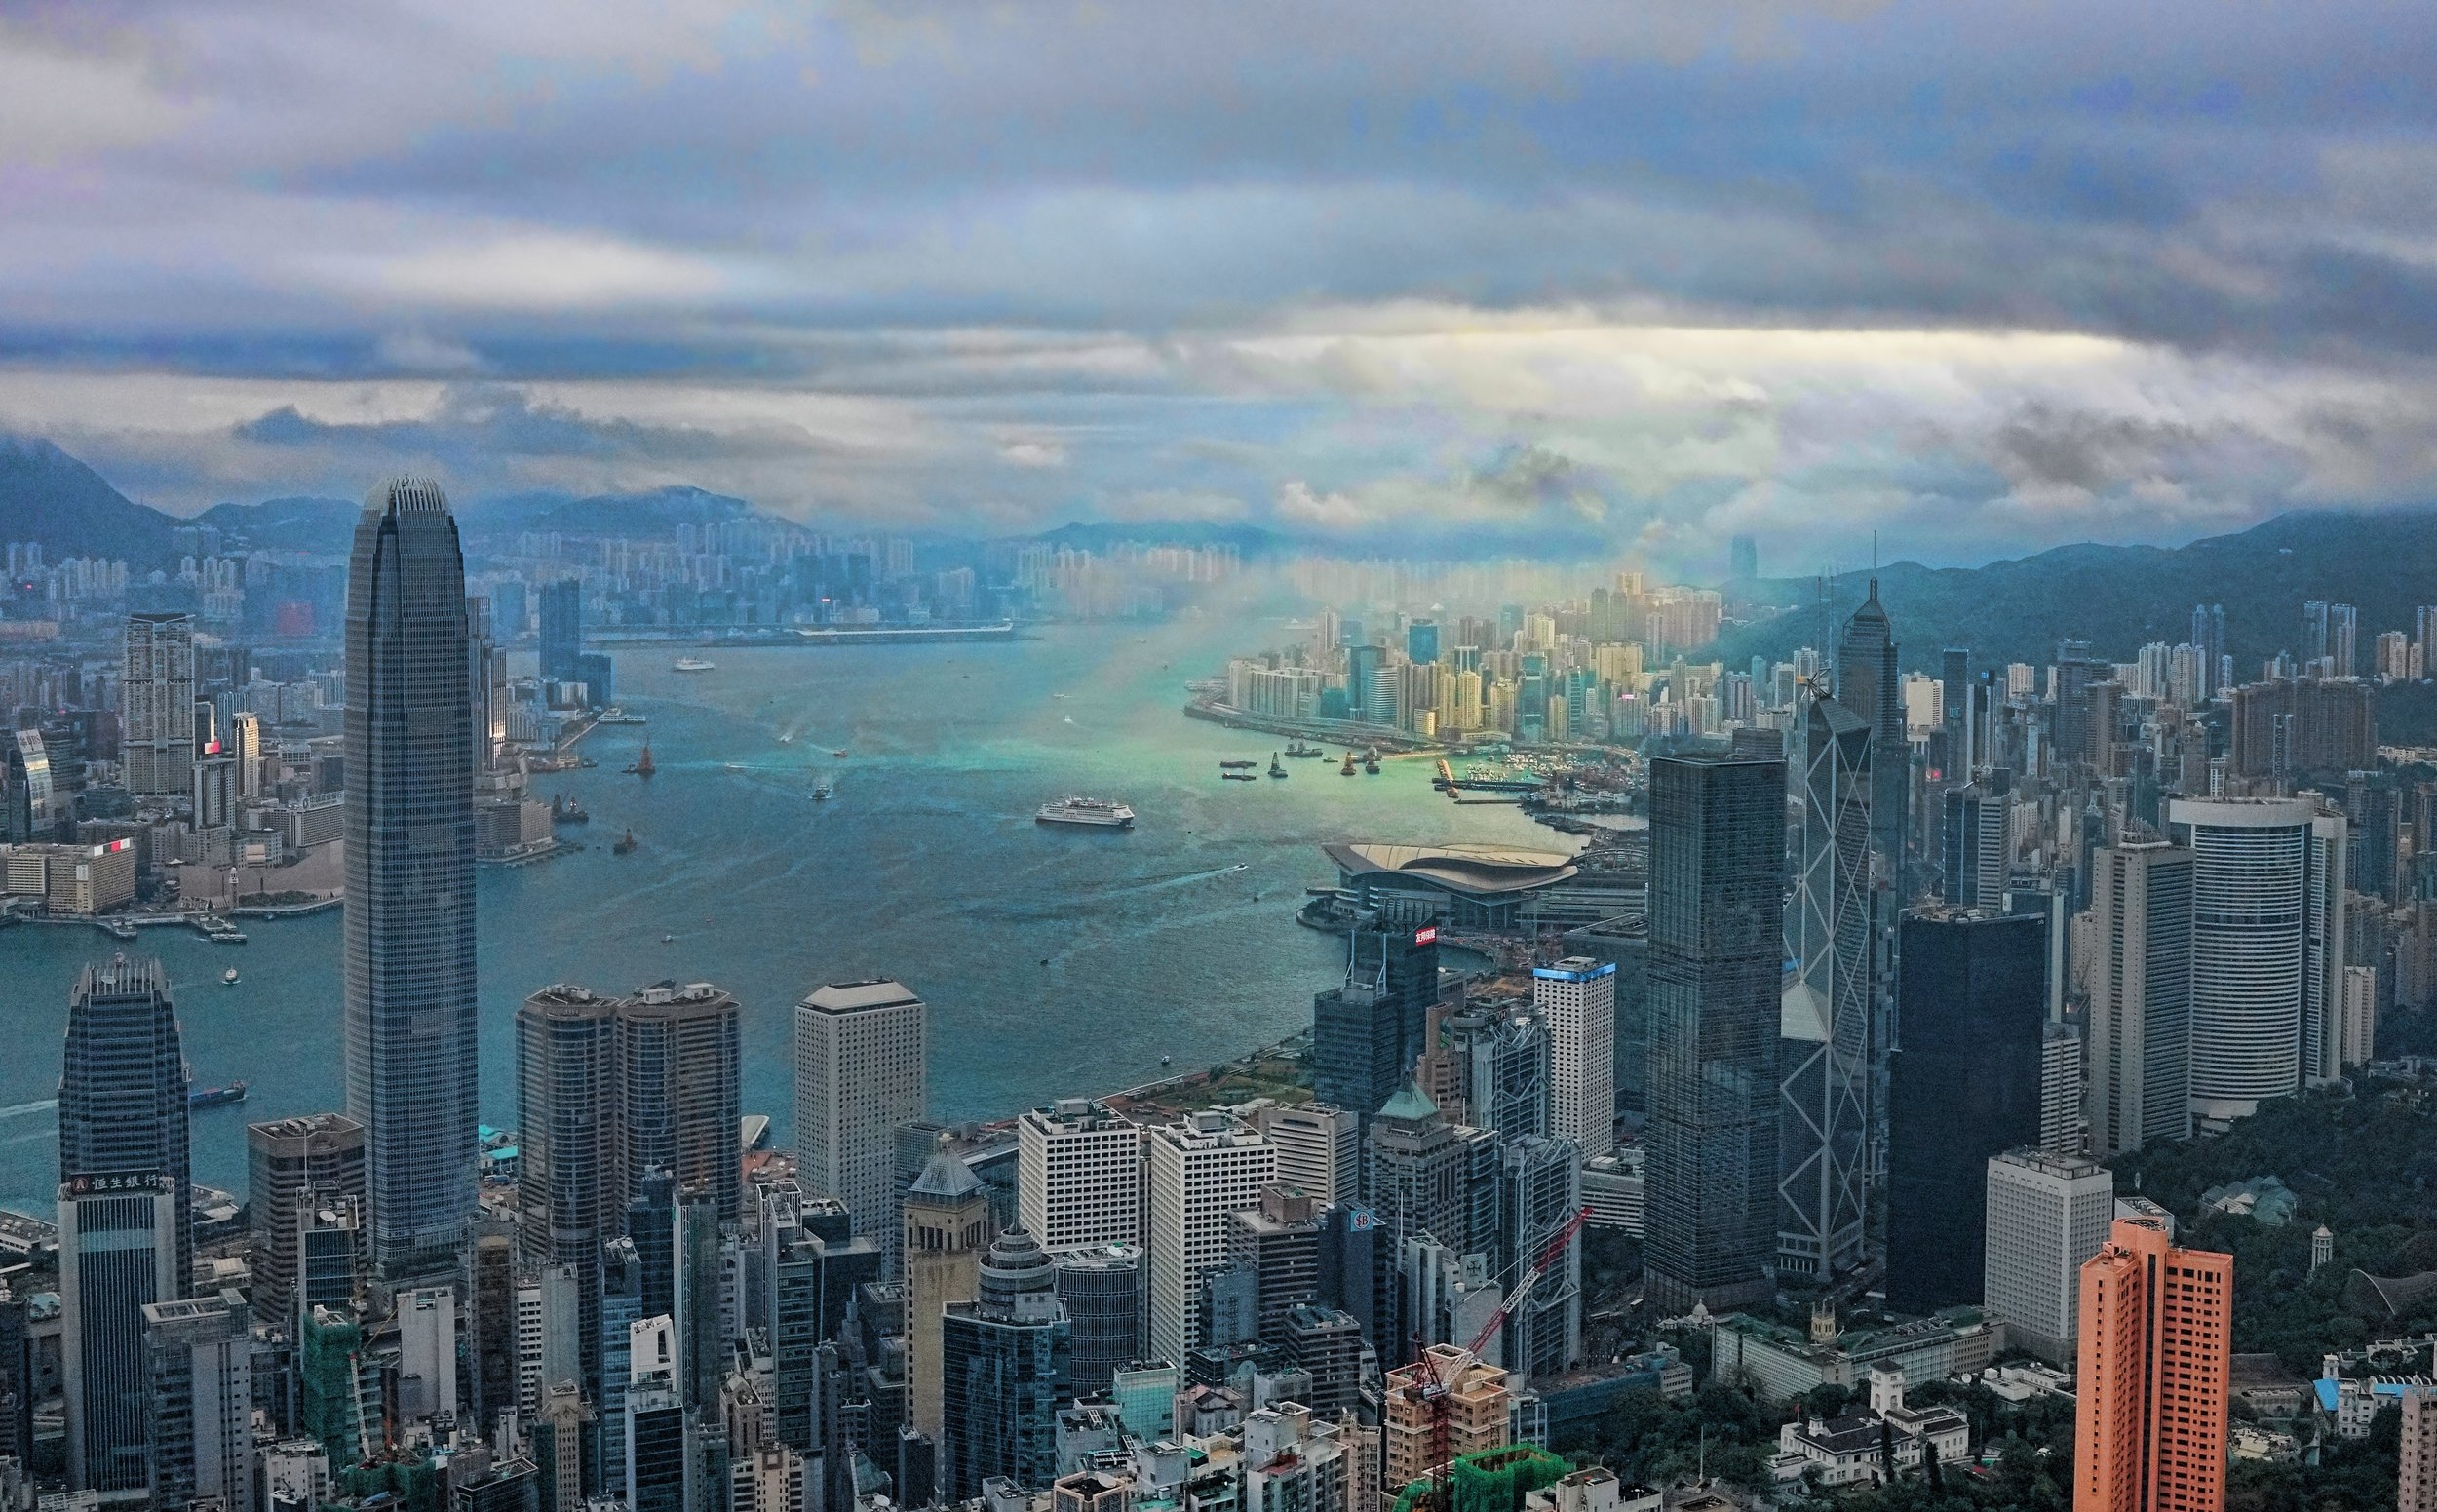 Hong Kong Airport Layover / Transit Tours -  One of those lucky images I get once in a while, I call it the god moment where the clouds part and the sun shines through.... naturally the image was taken at my spot at the Peak!